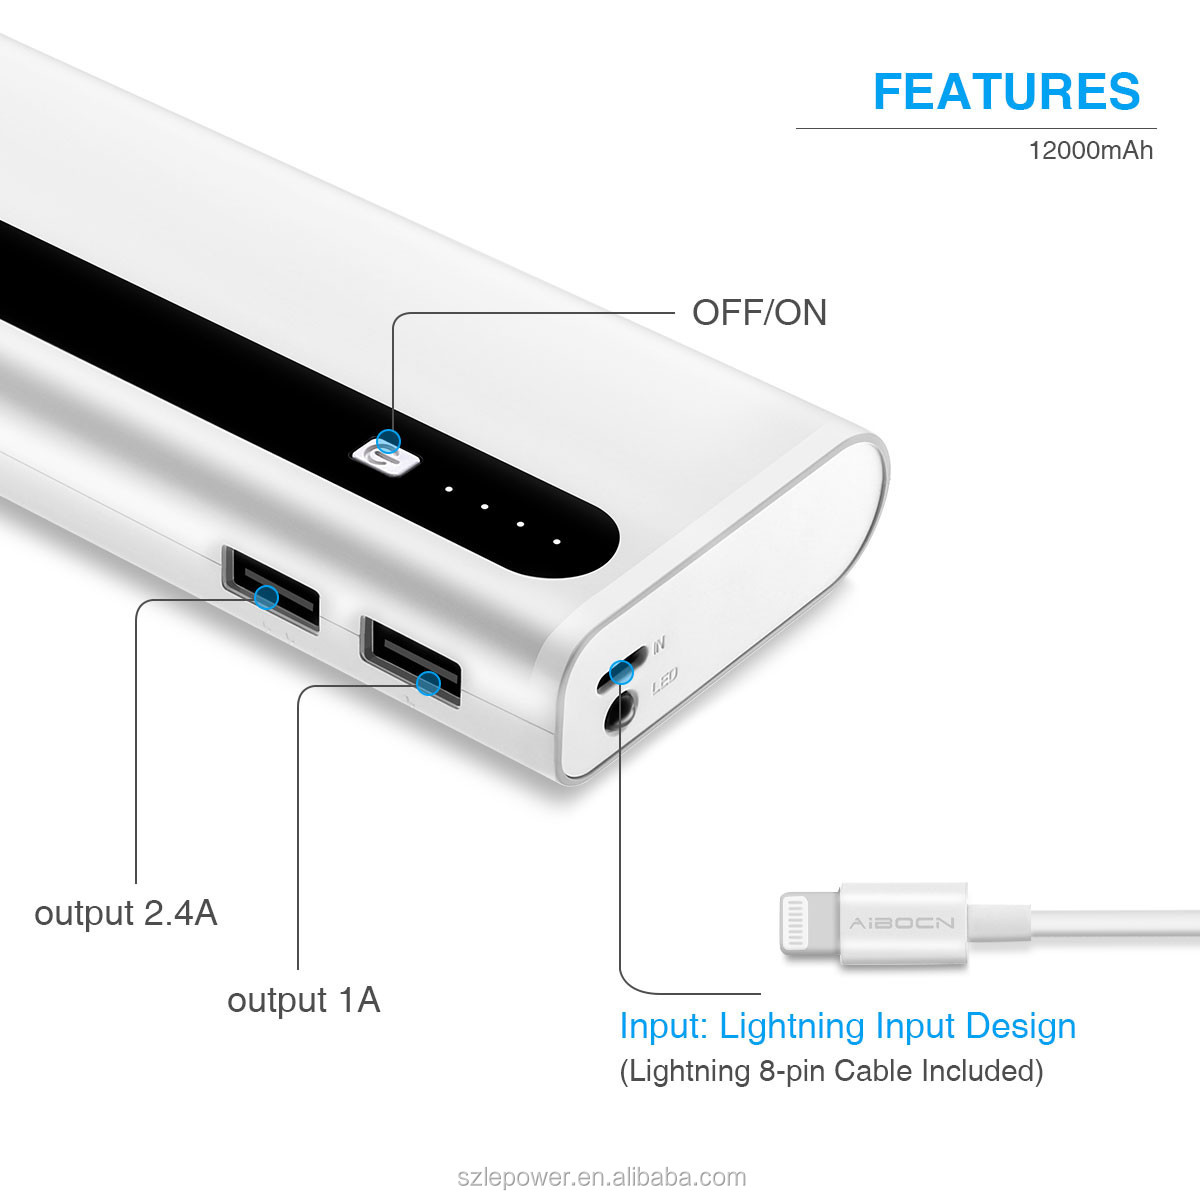 Aibocn Upgraded high capacity 12000mAh External Battery Portable Charger Power Bank